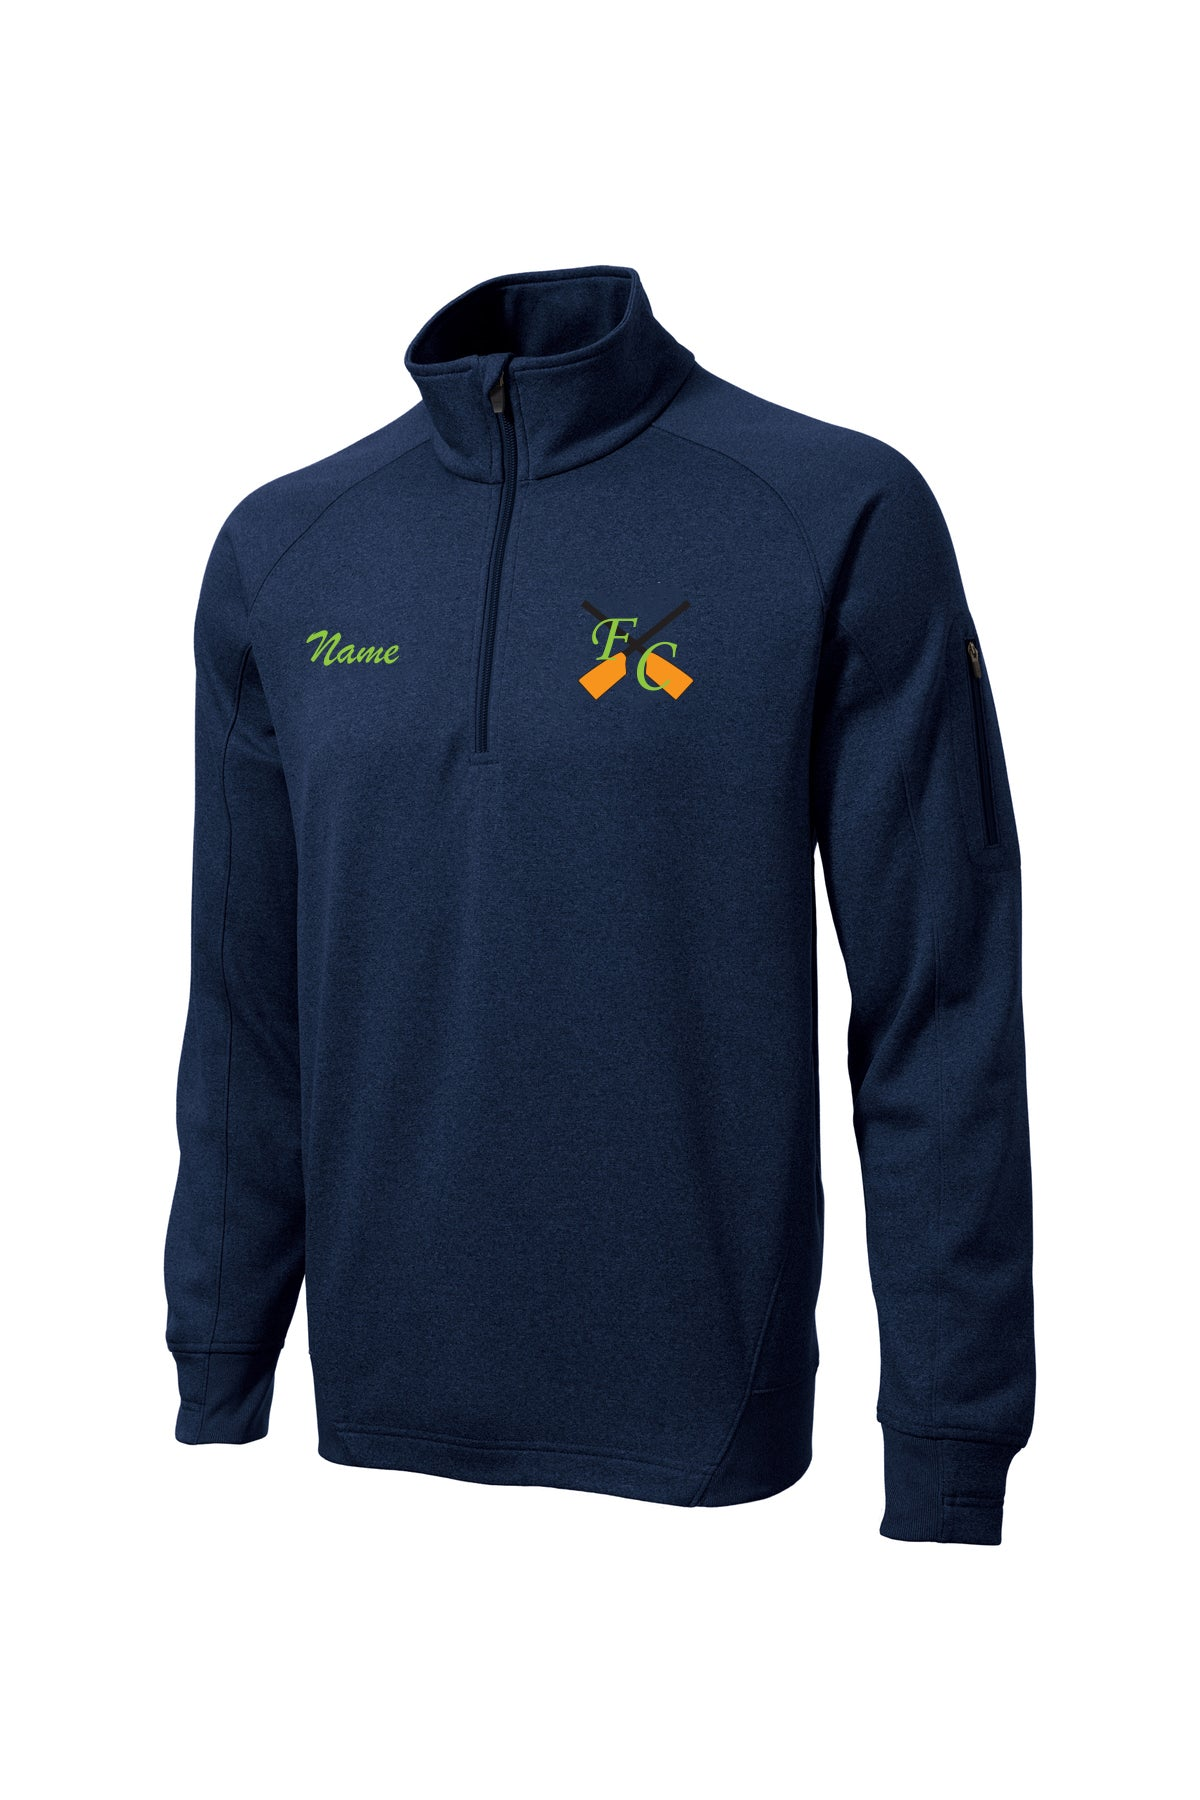 FCRA Mens Performance Sweatshirt